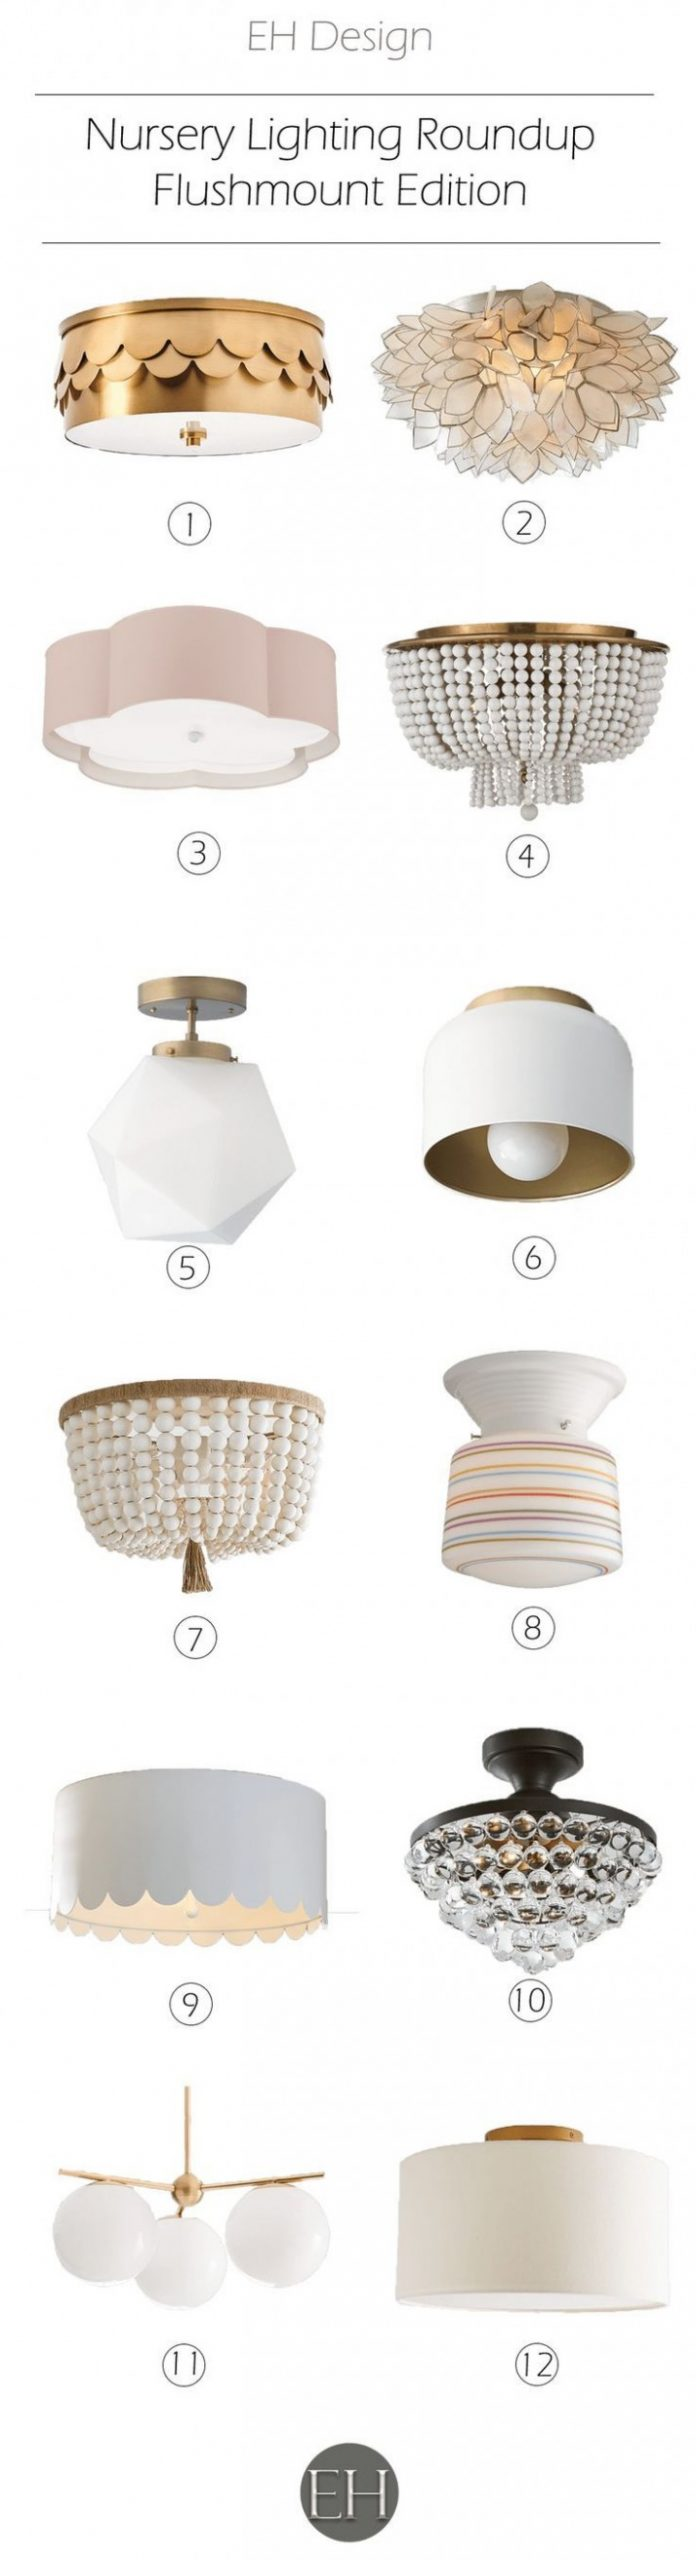 Nursery Lighting Roundup - Flushmount Edition  EH Design - EH  - Baby Room Light Fixtures